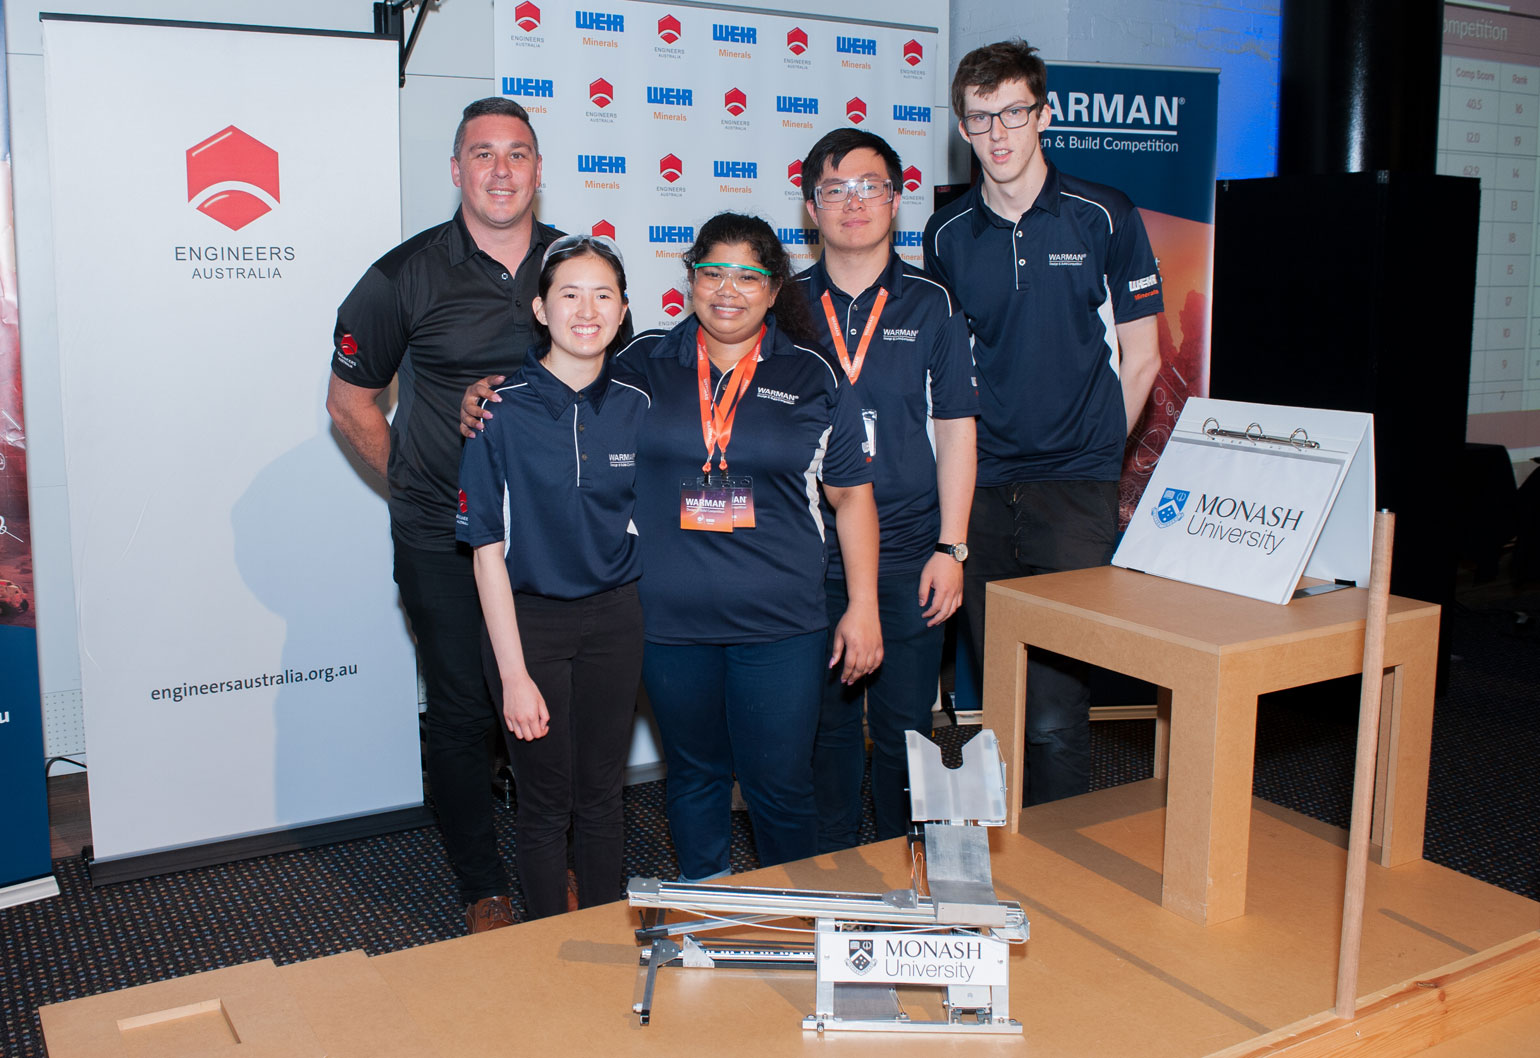 Monash University team at Warman Design and Build Competition